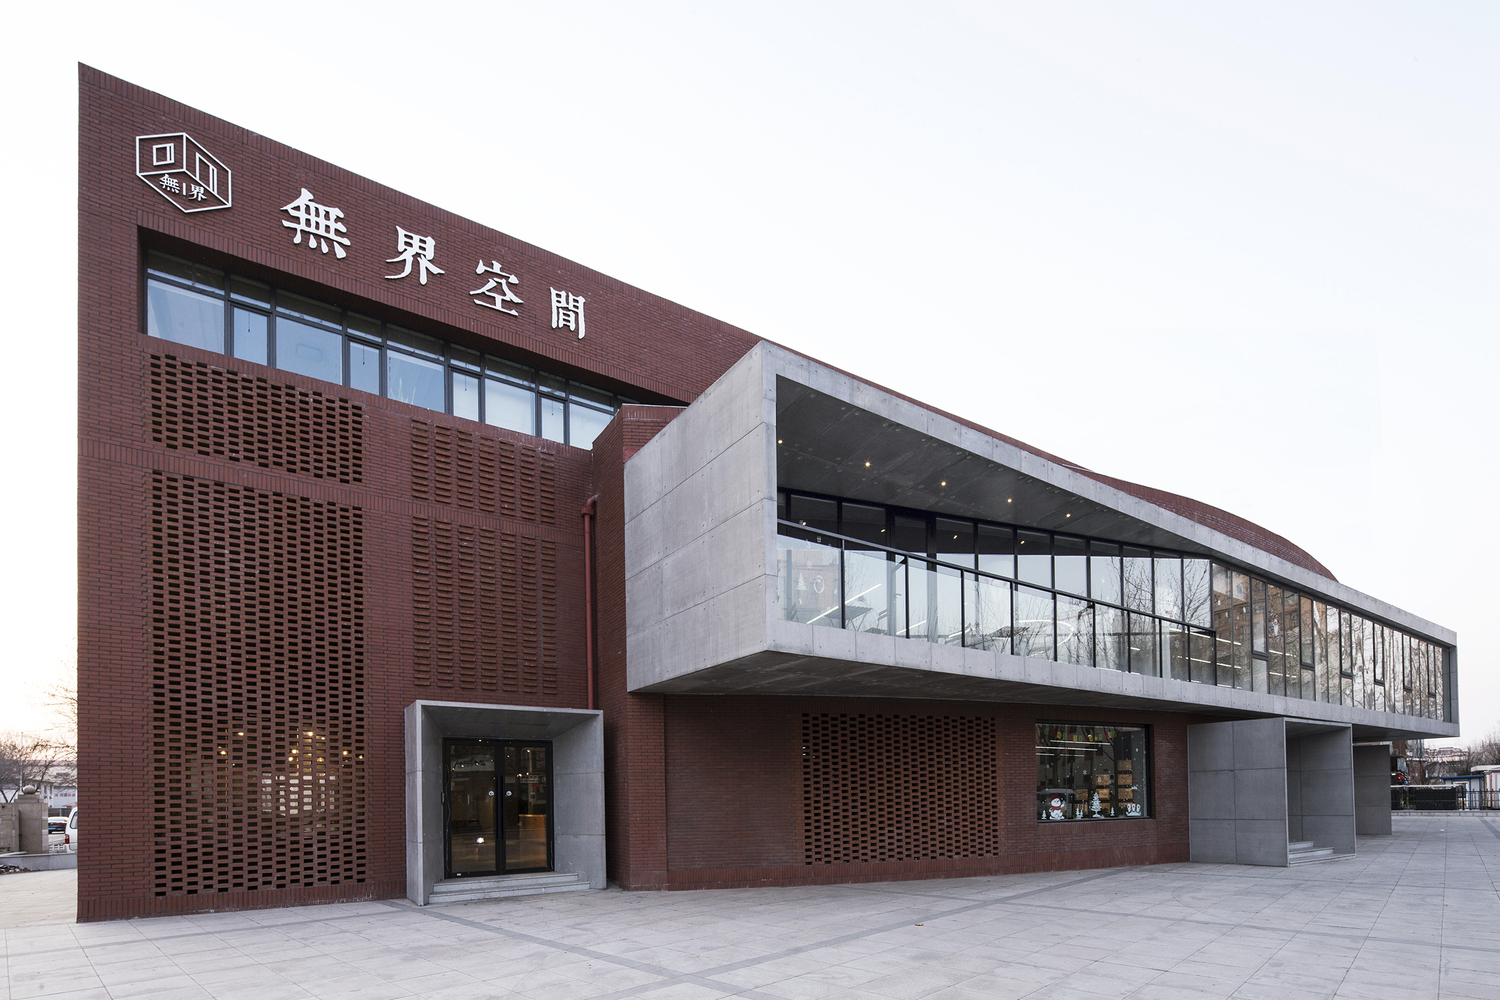 Renovation Facade Gallery Of Woo Space Tianjin Hypersity 1